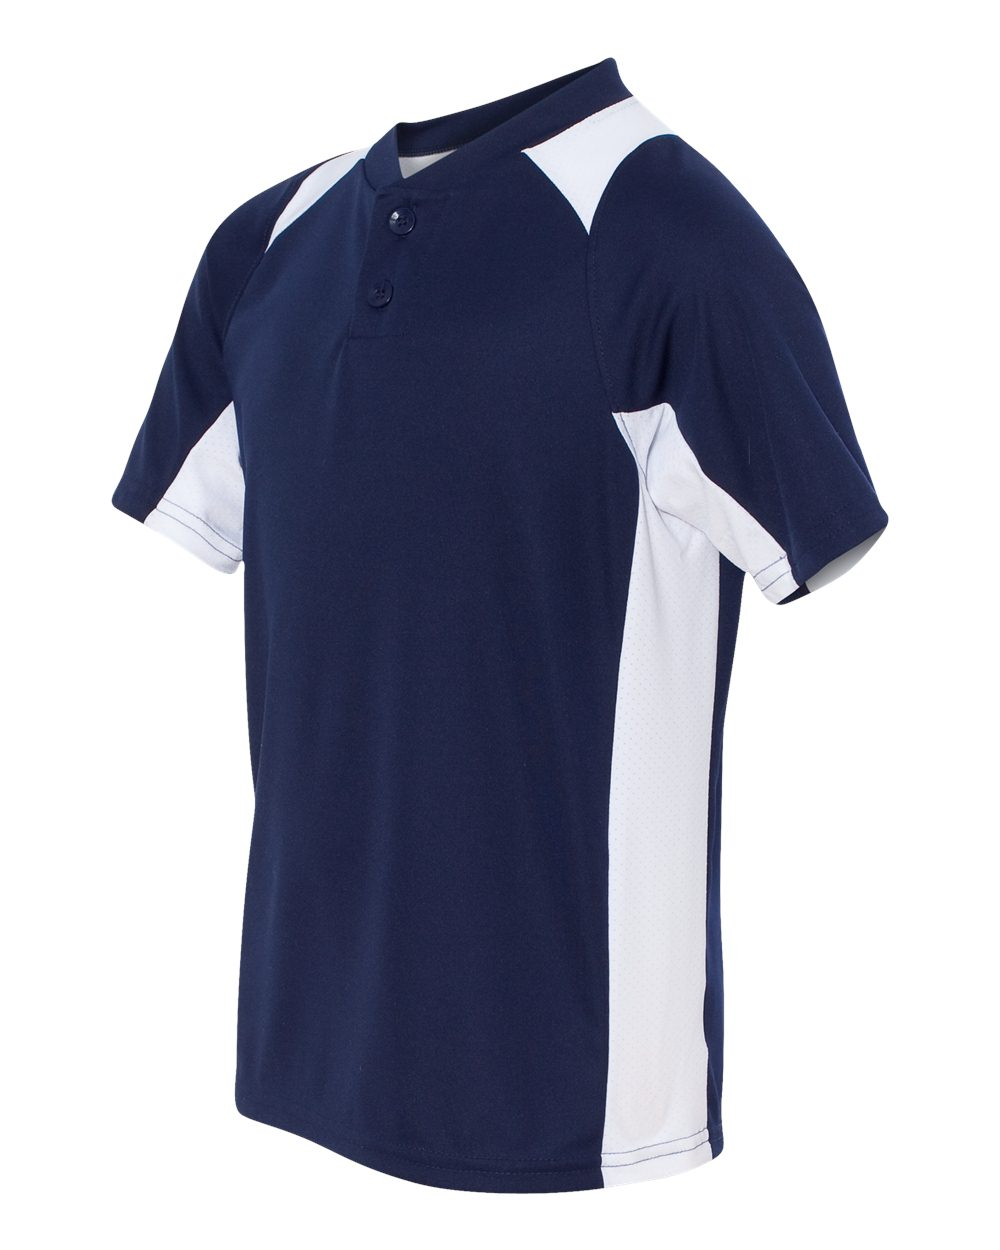 Augusta Sportswear 1521 - Youth Gamer Colorblocked Baseball Henley